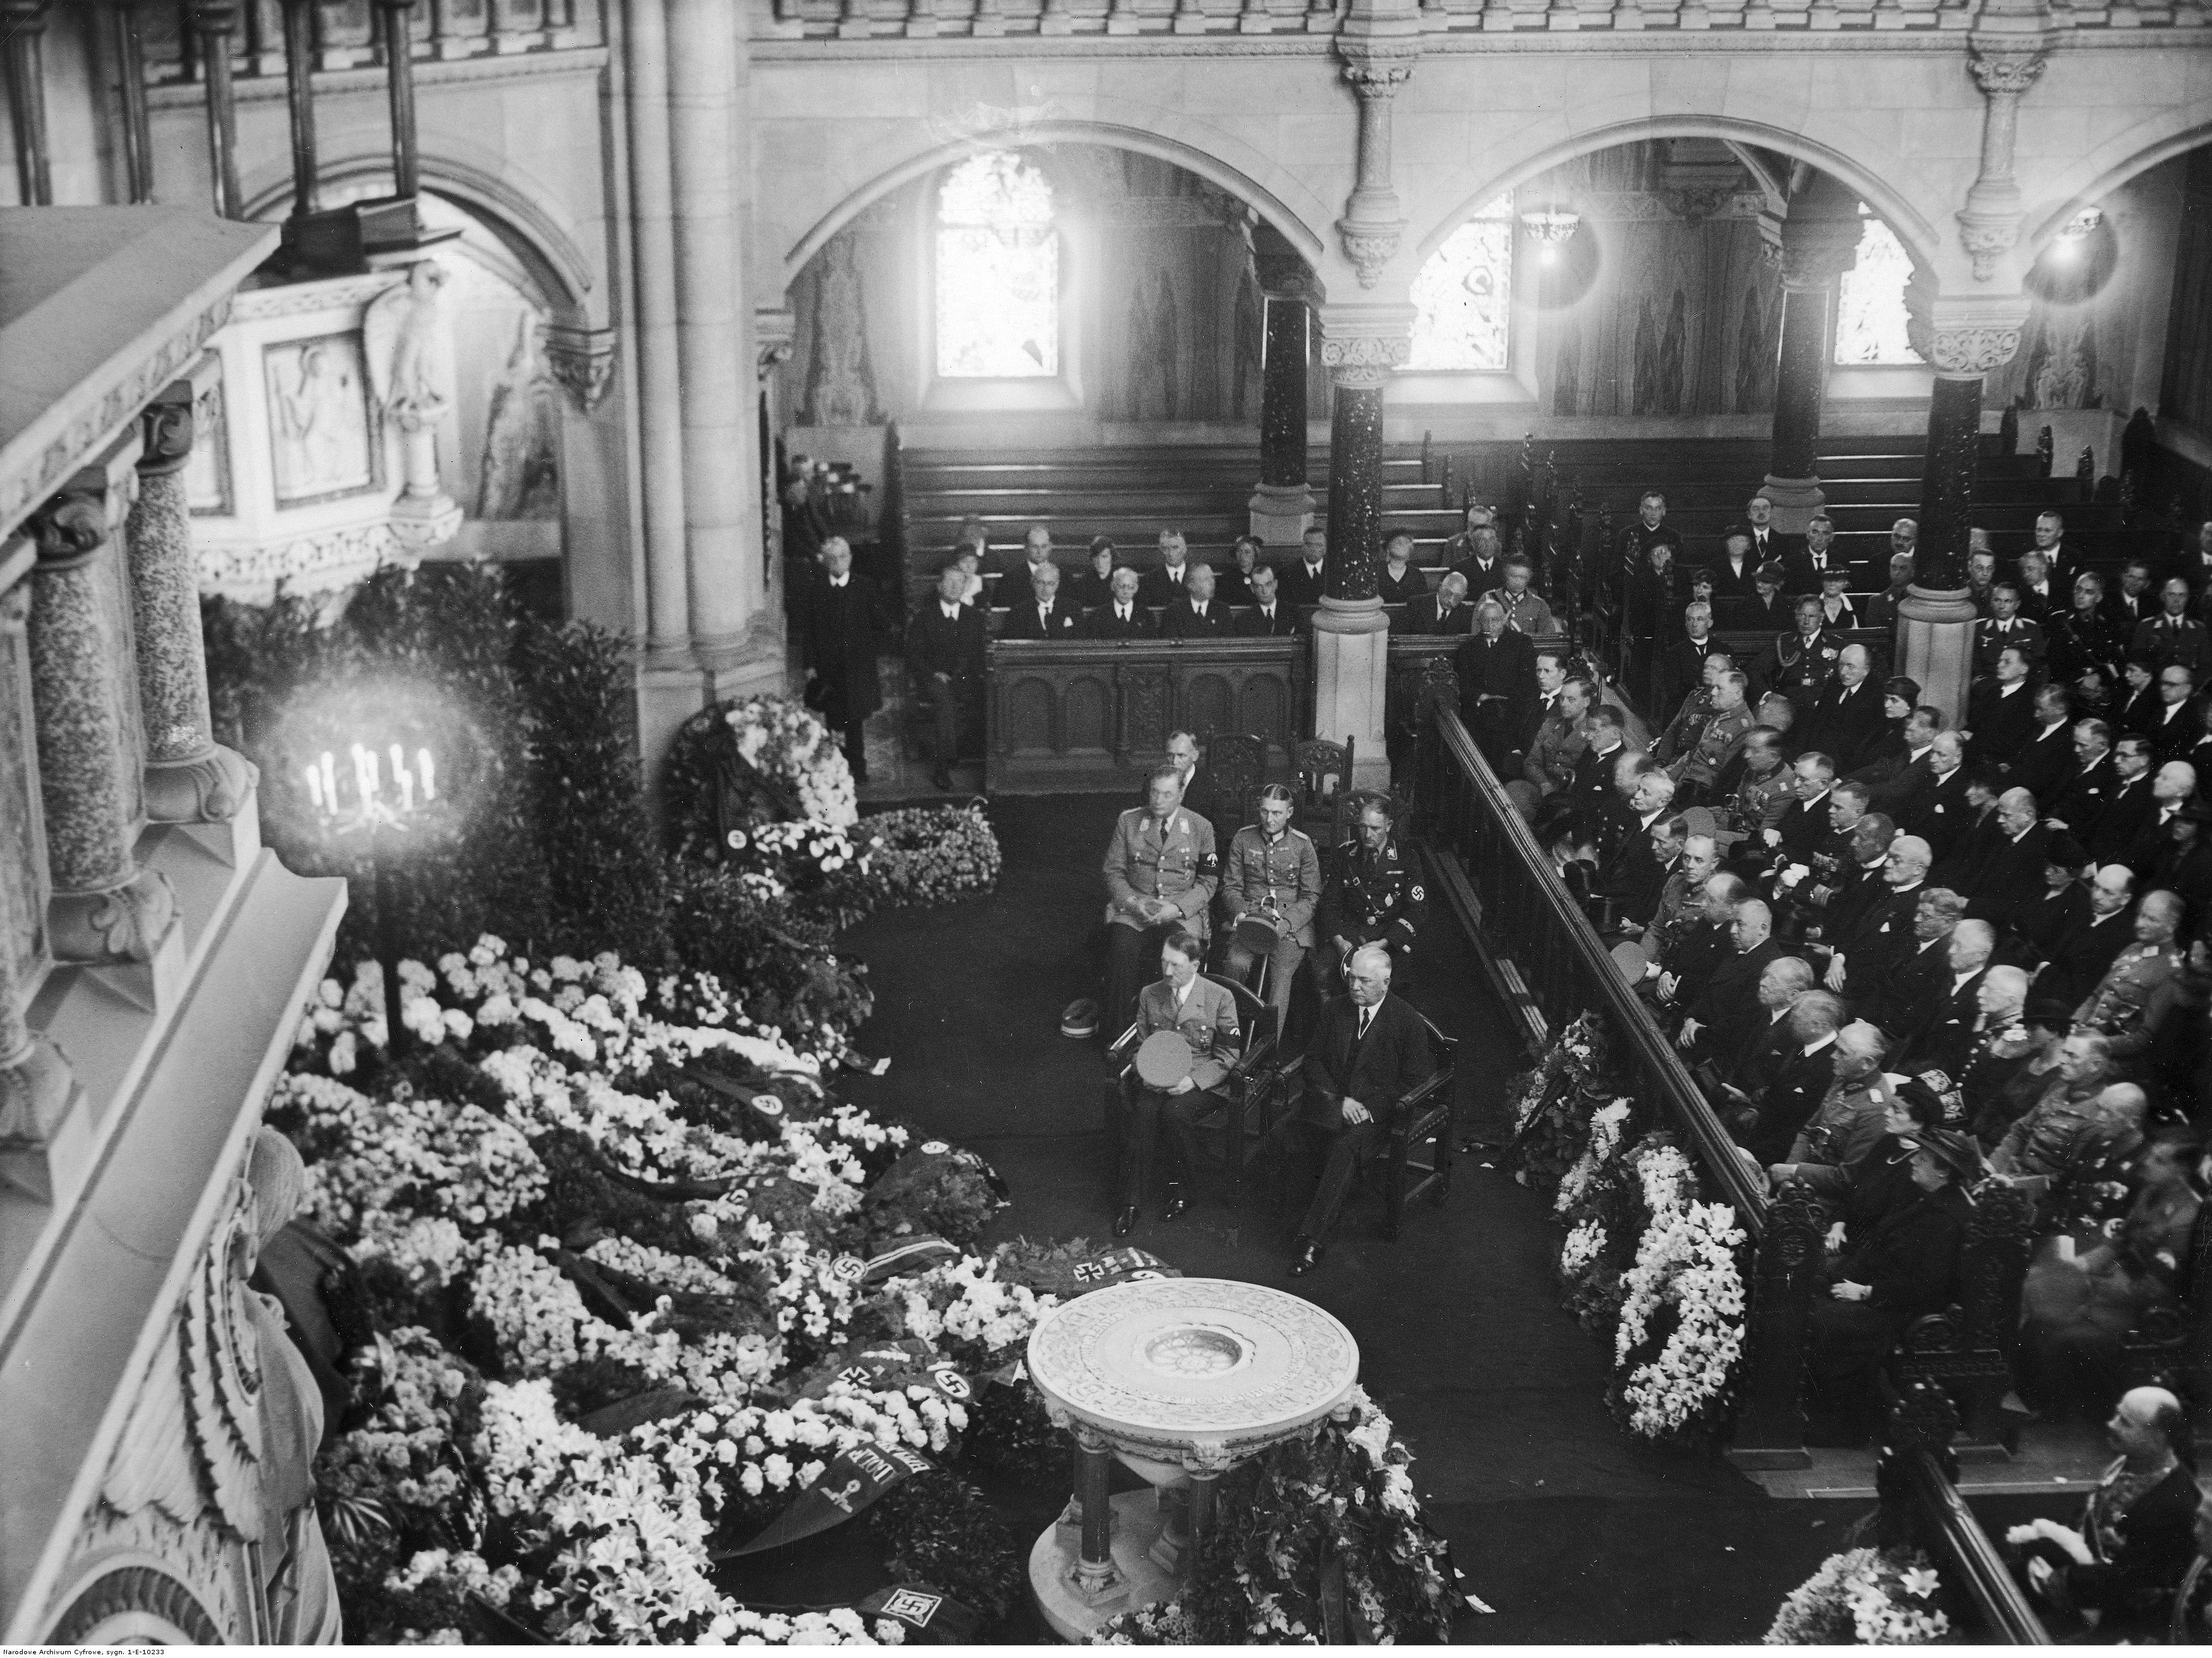 Adolf Hitler at the funeral of Bernhard Wilhelm von Bulow in Berlin